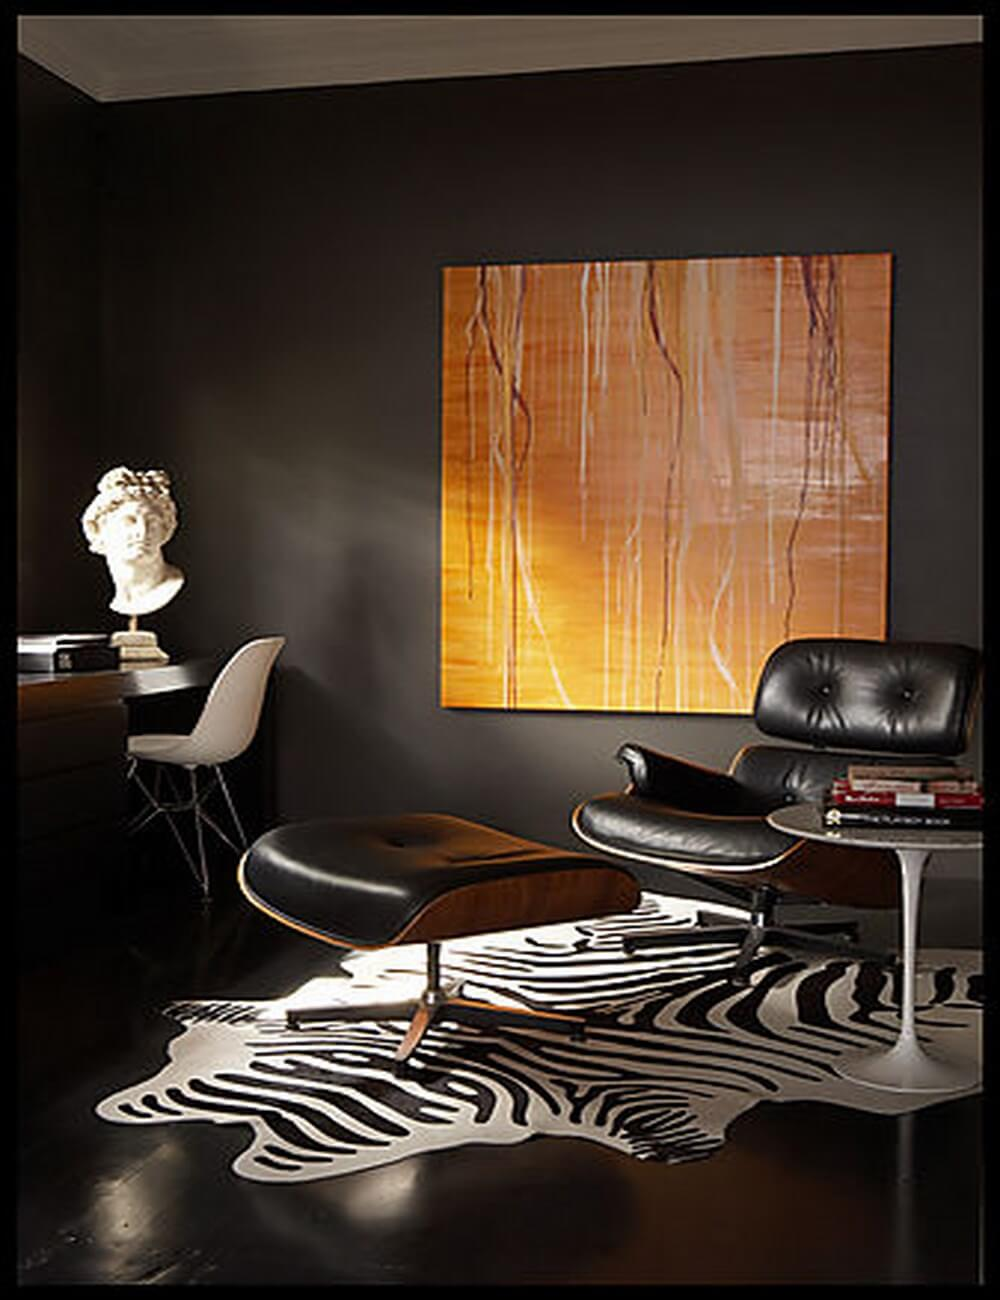 Faux zebra print rug in home office